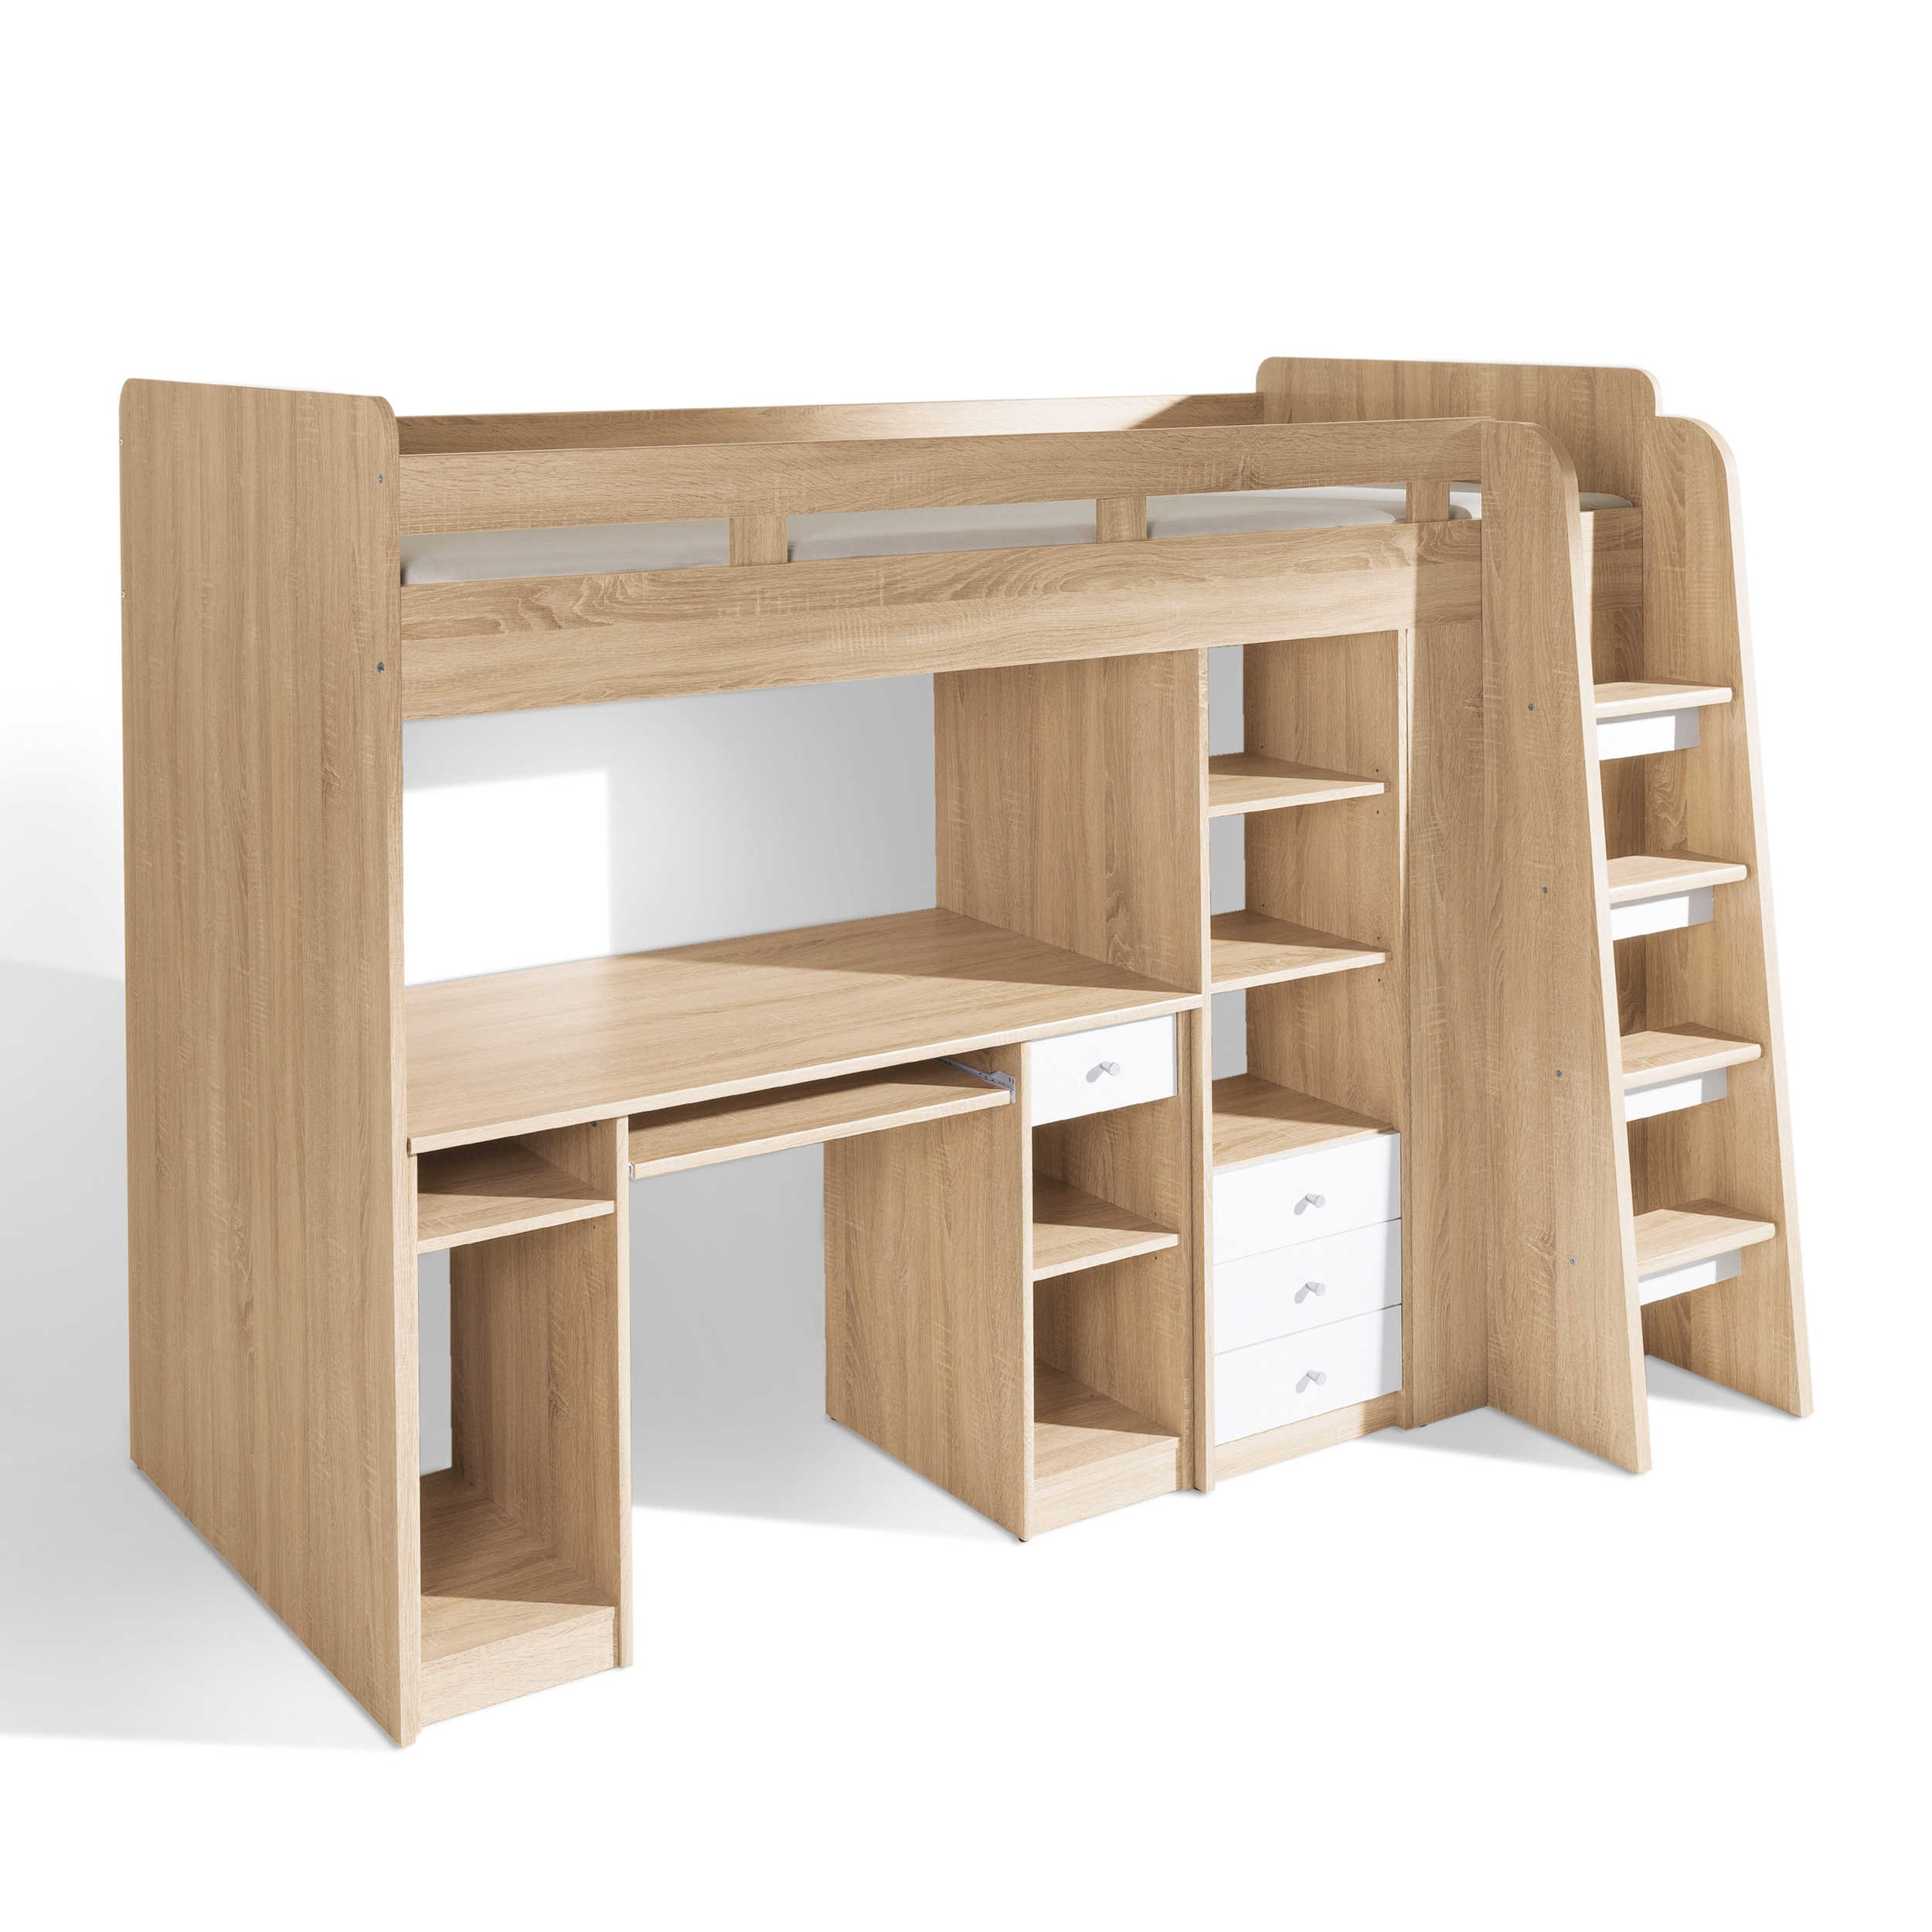 pol power hochbett unit 90 x 200 cm eiche holzoptik online kaufen bei woonio. Black Bedroom Furniture Sets. Home Design Ideas